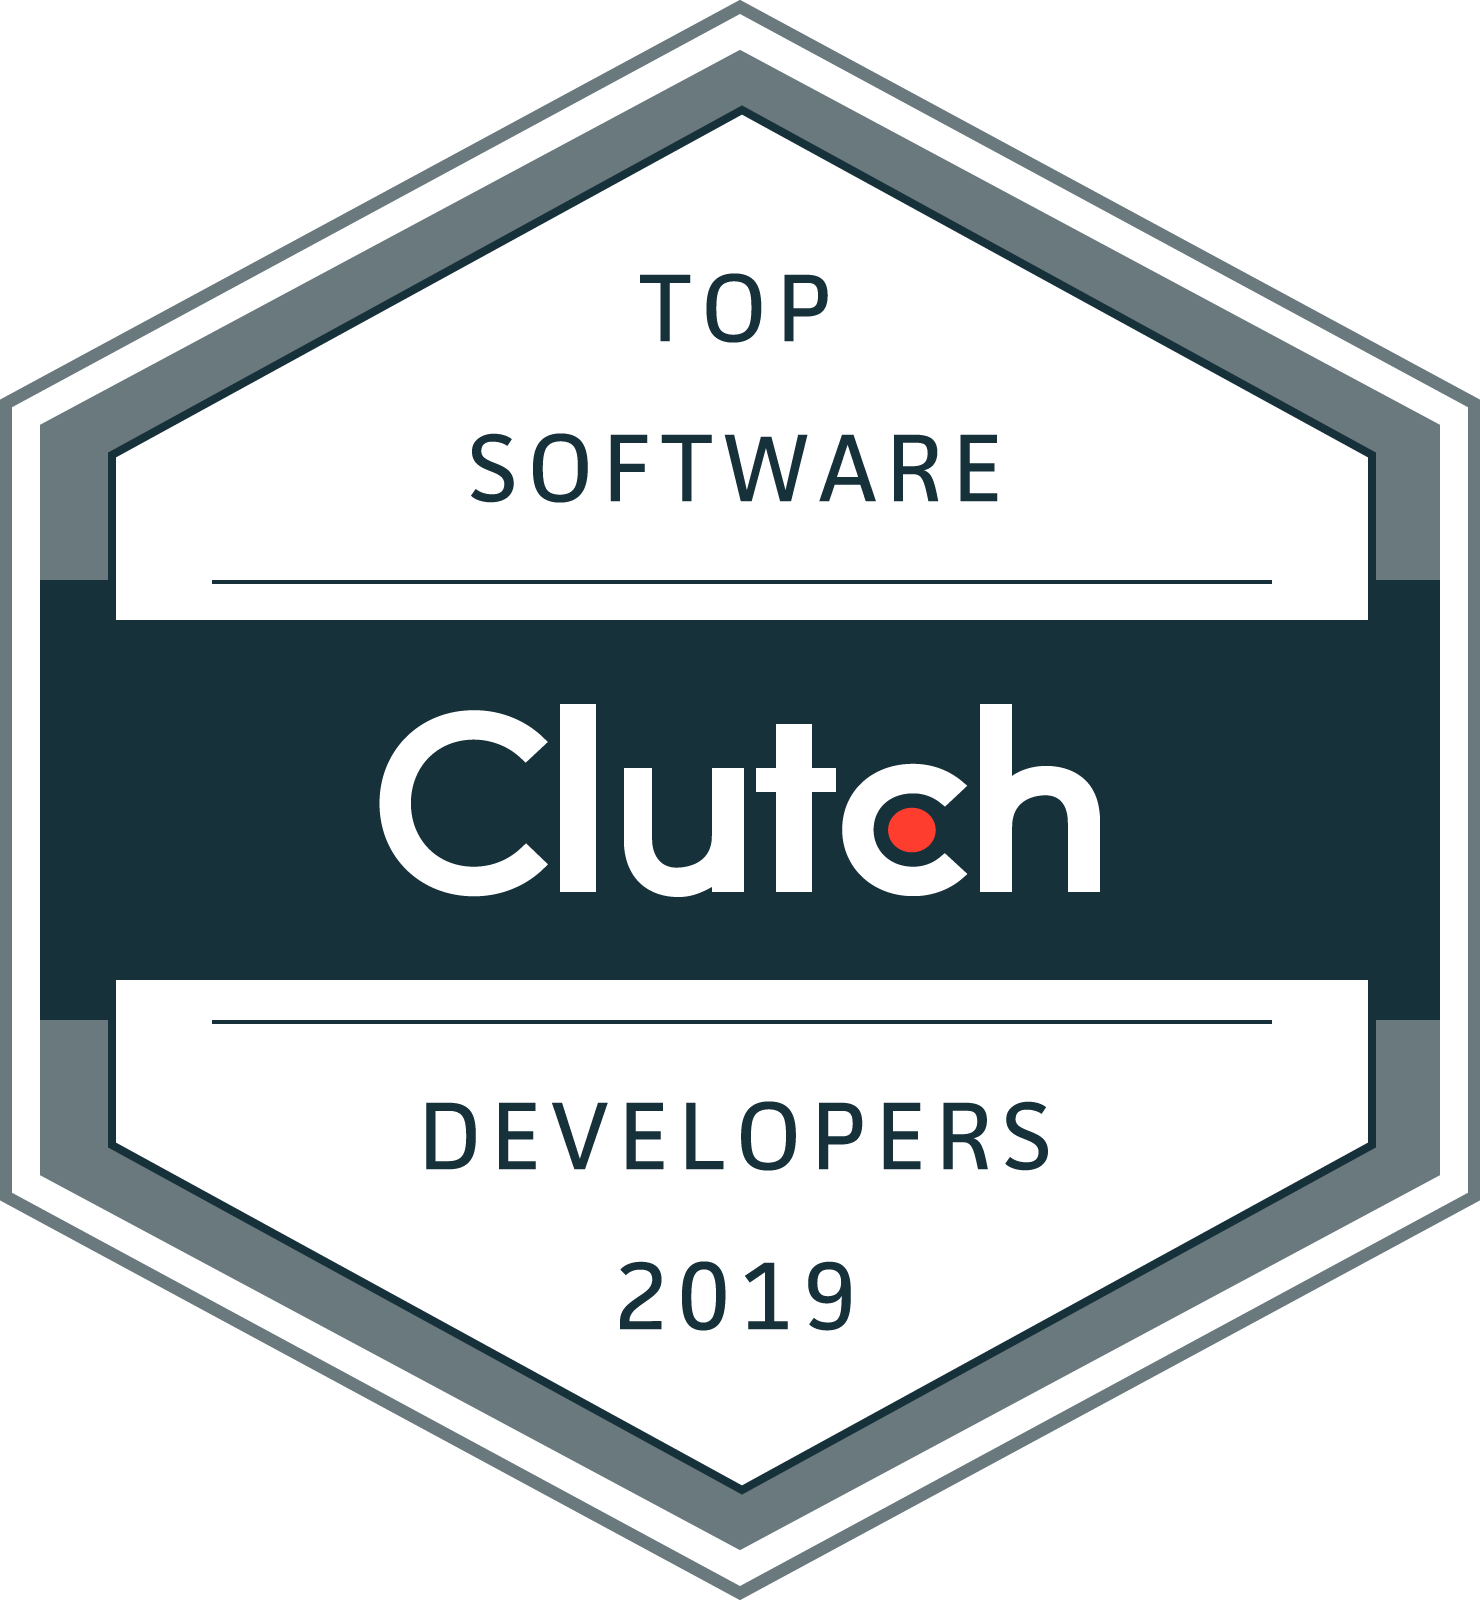 Clutch Top India Development Companies Features Webicules Technology in Their Clutch Leader Awards 2019